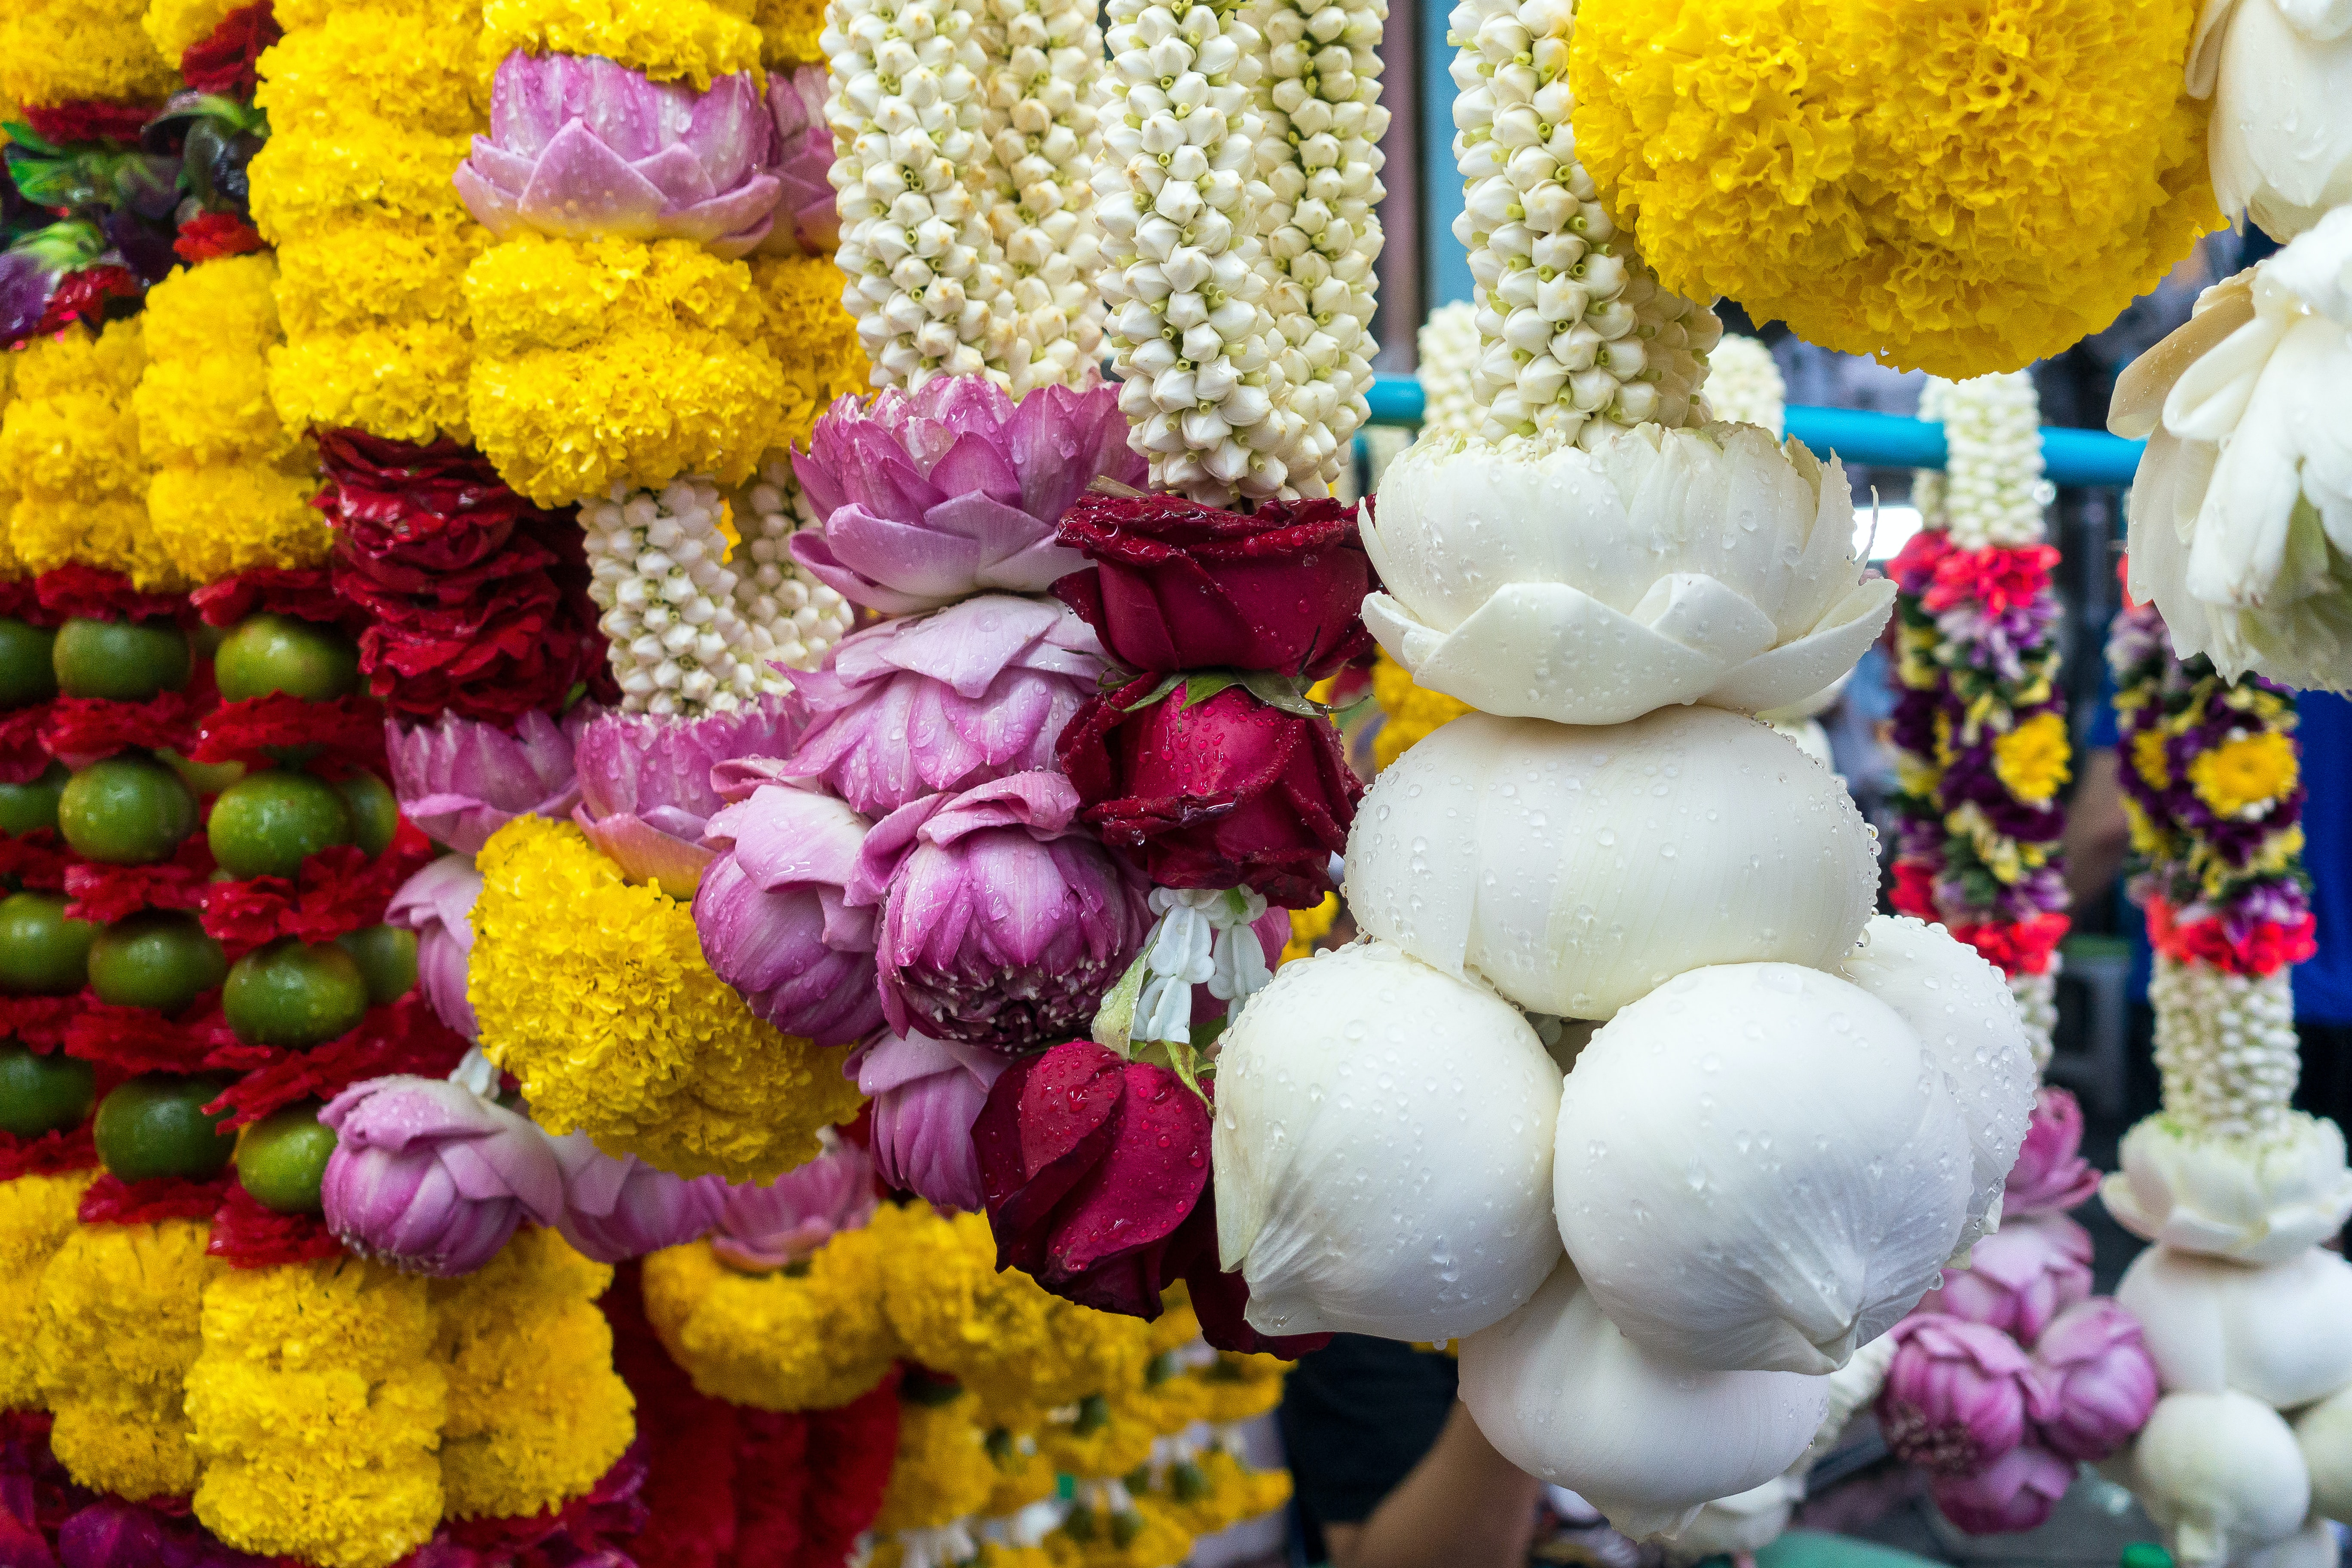 Chiang Mai Flower Festival, Events in Thailand in February